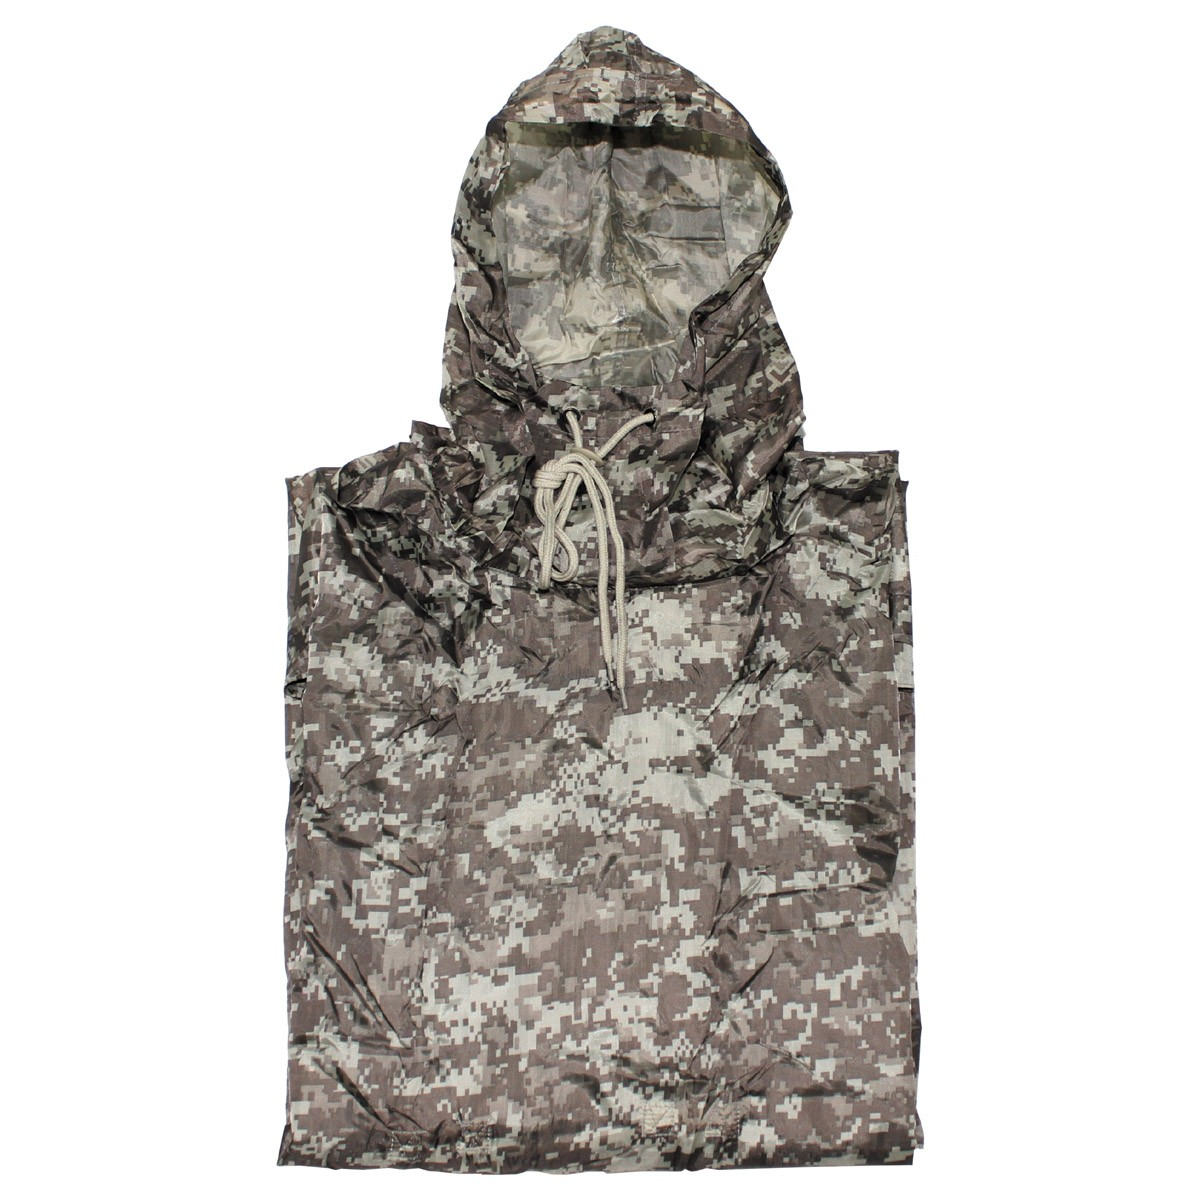 US Army Waterproof RipStop Hooded Rain Military Poncho - AT Digital